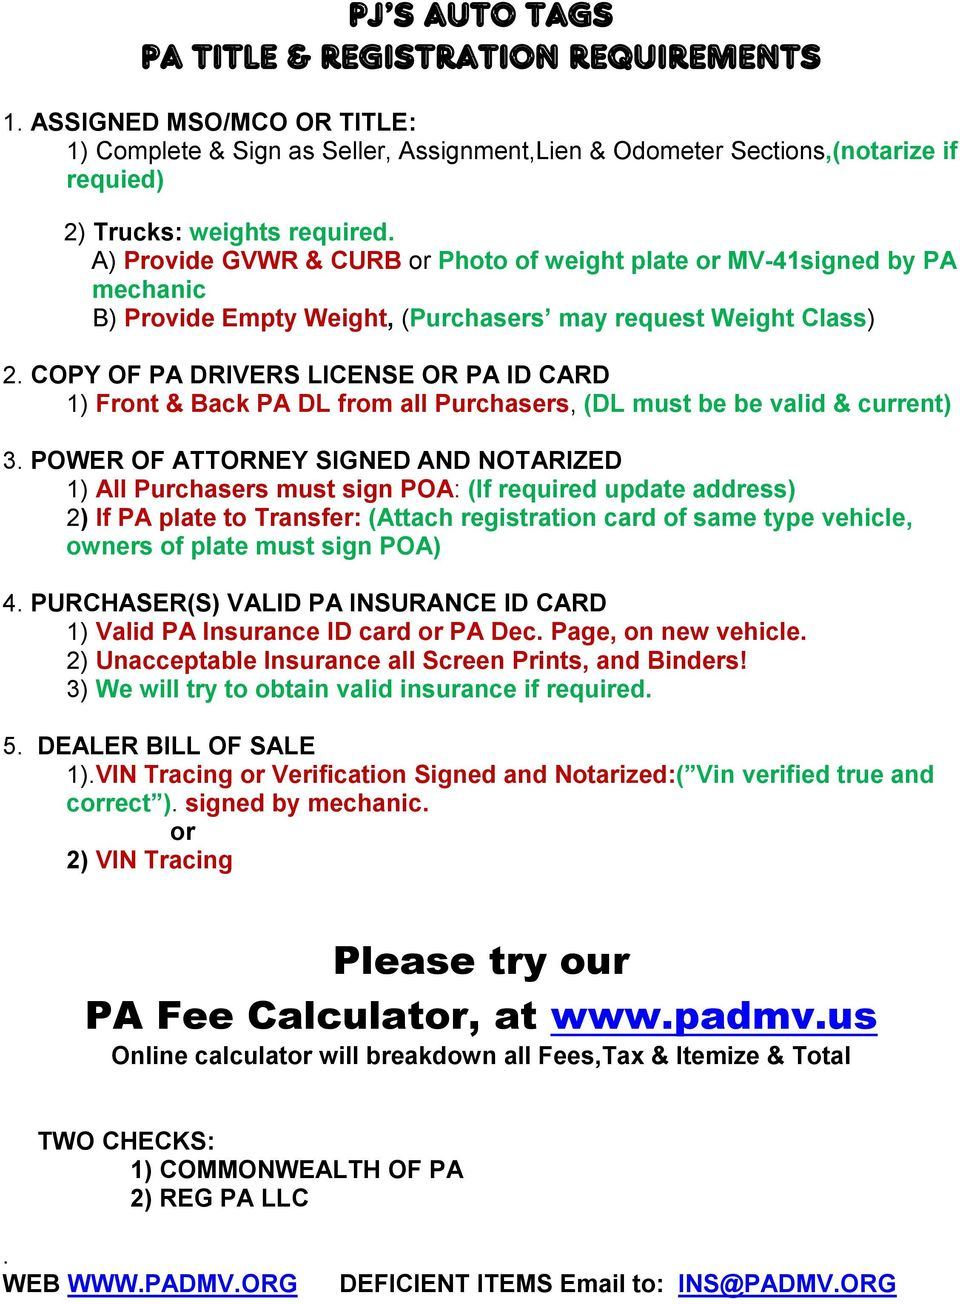 pj s auto tags a pa dmv location pdf